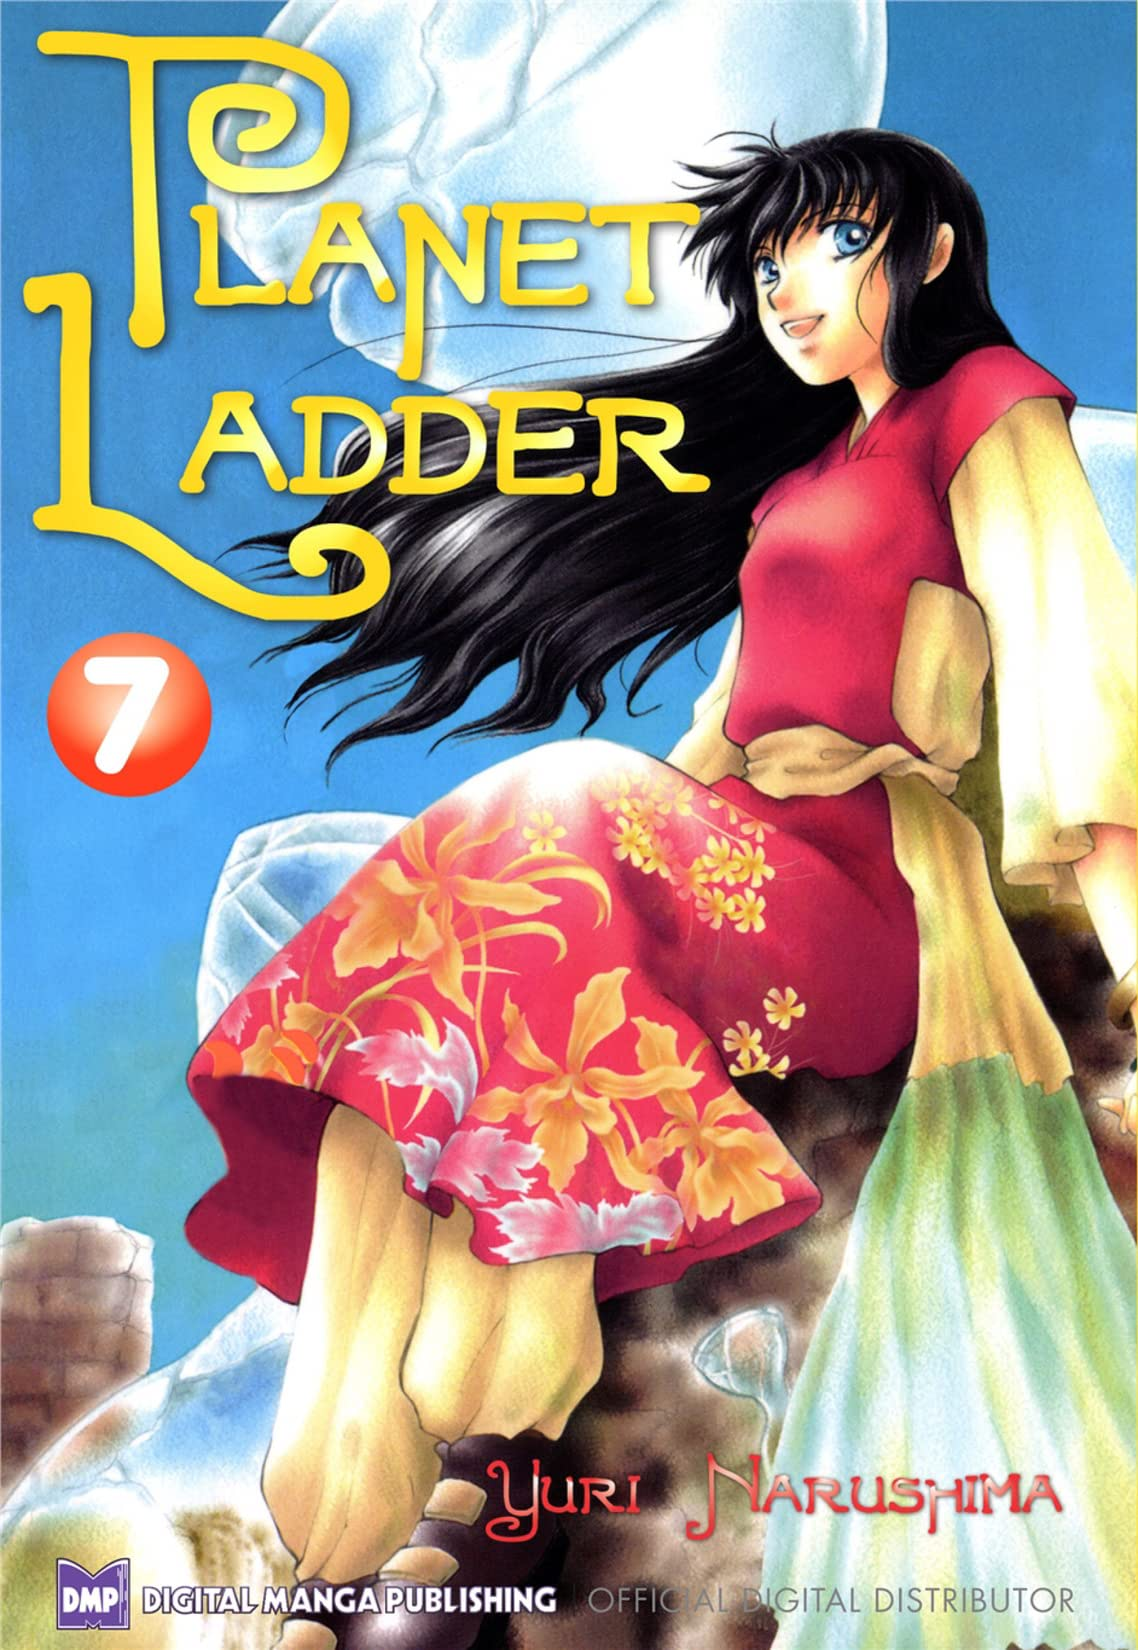 Planet Ladder Vol. 7